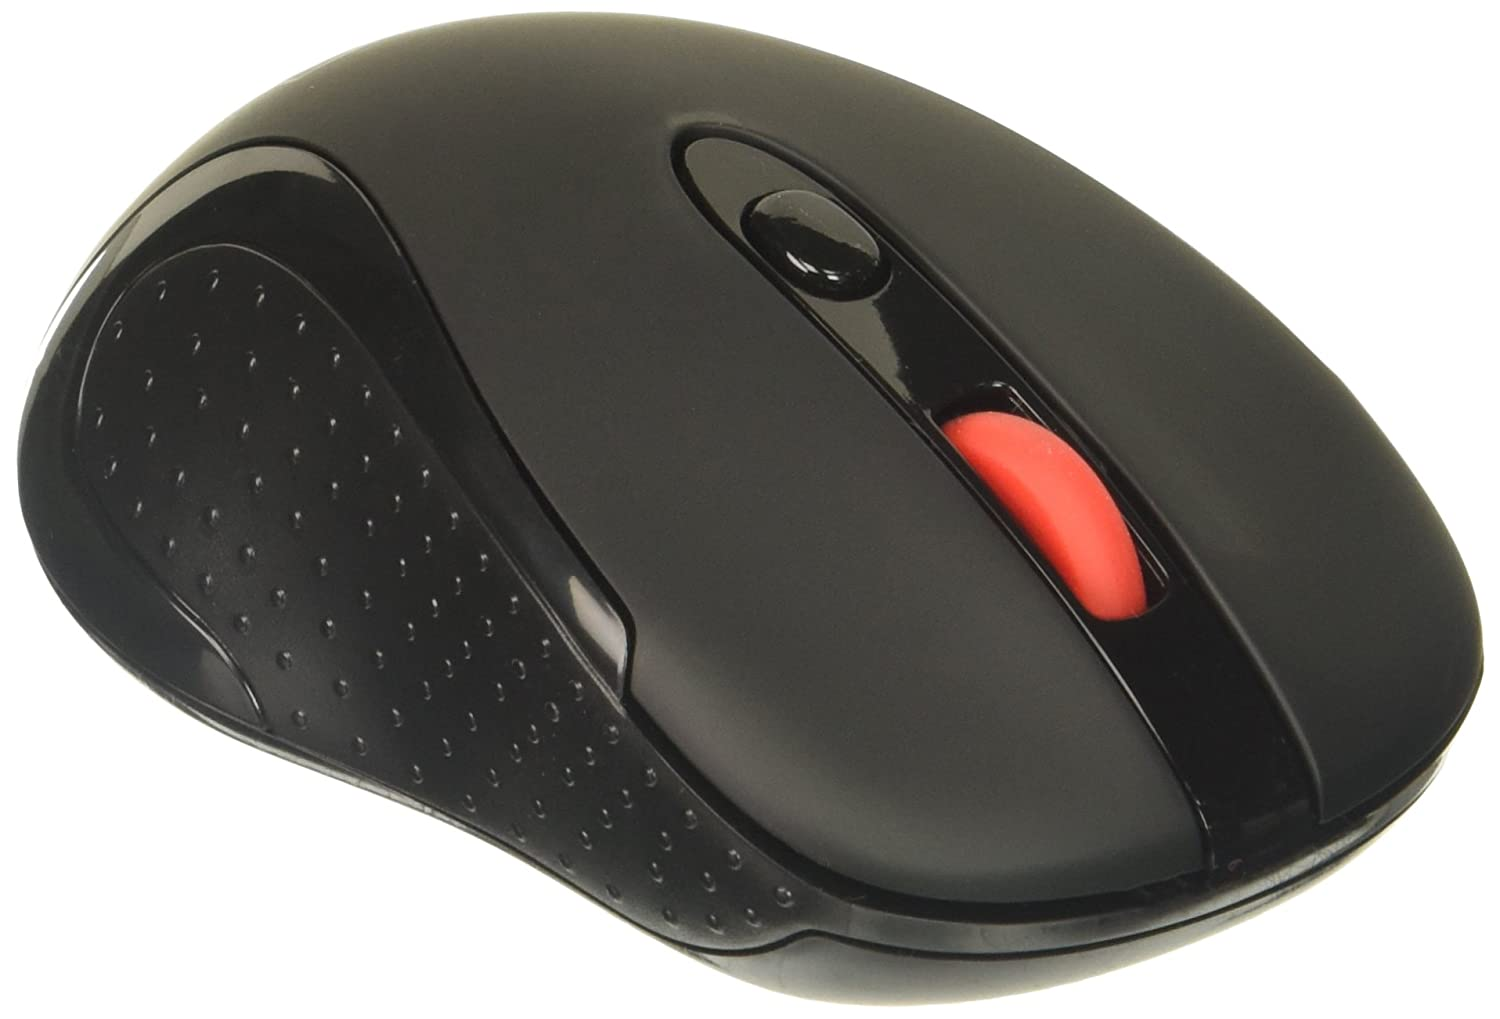 b814fb1c2d1 Amazon.com: New Version, Logitech M510 Wireless Mouse: Cell Phones &  Accessories